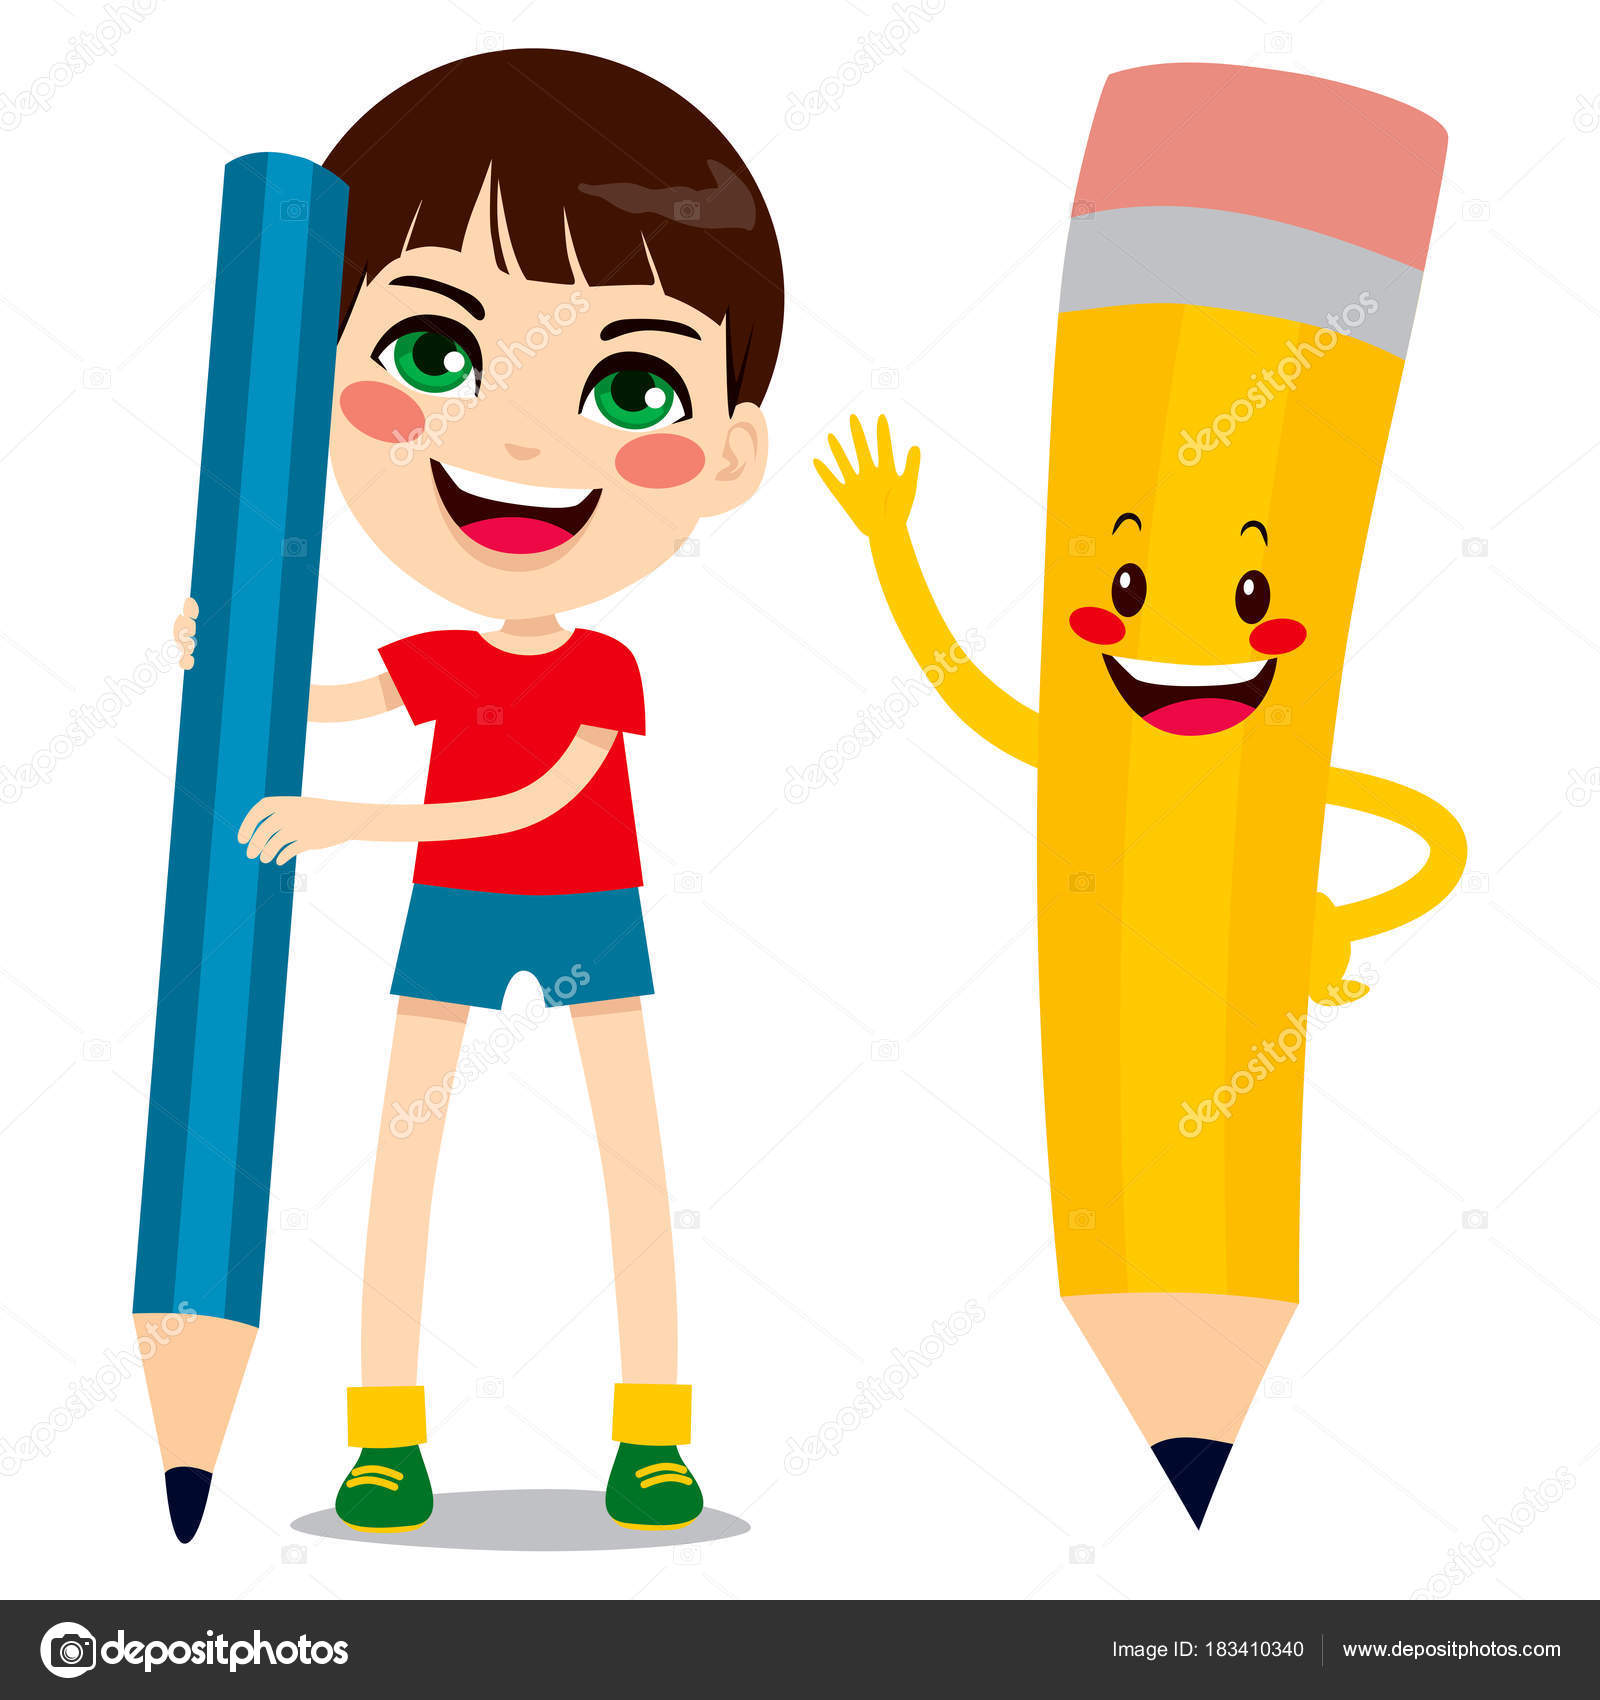 Boy and pencil character stock illustration